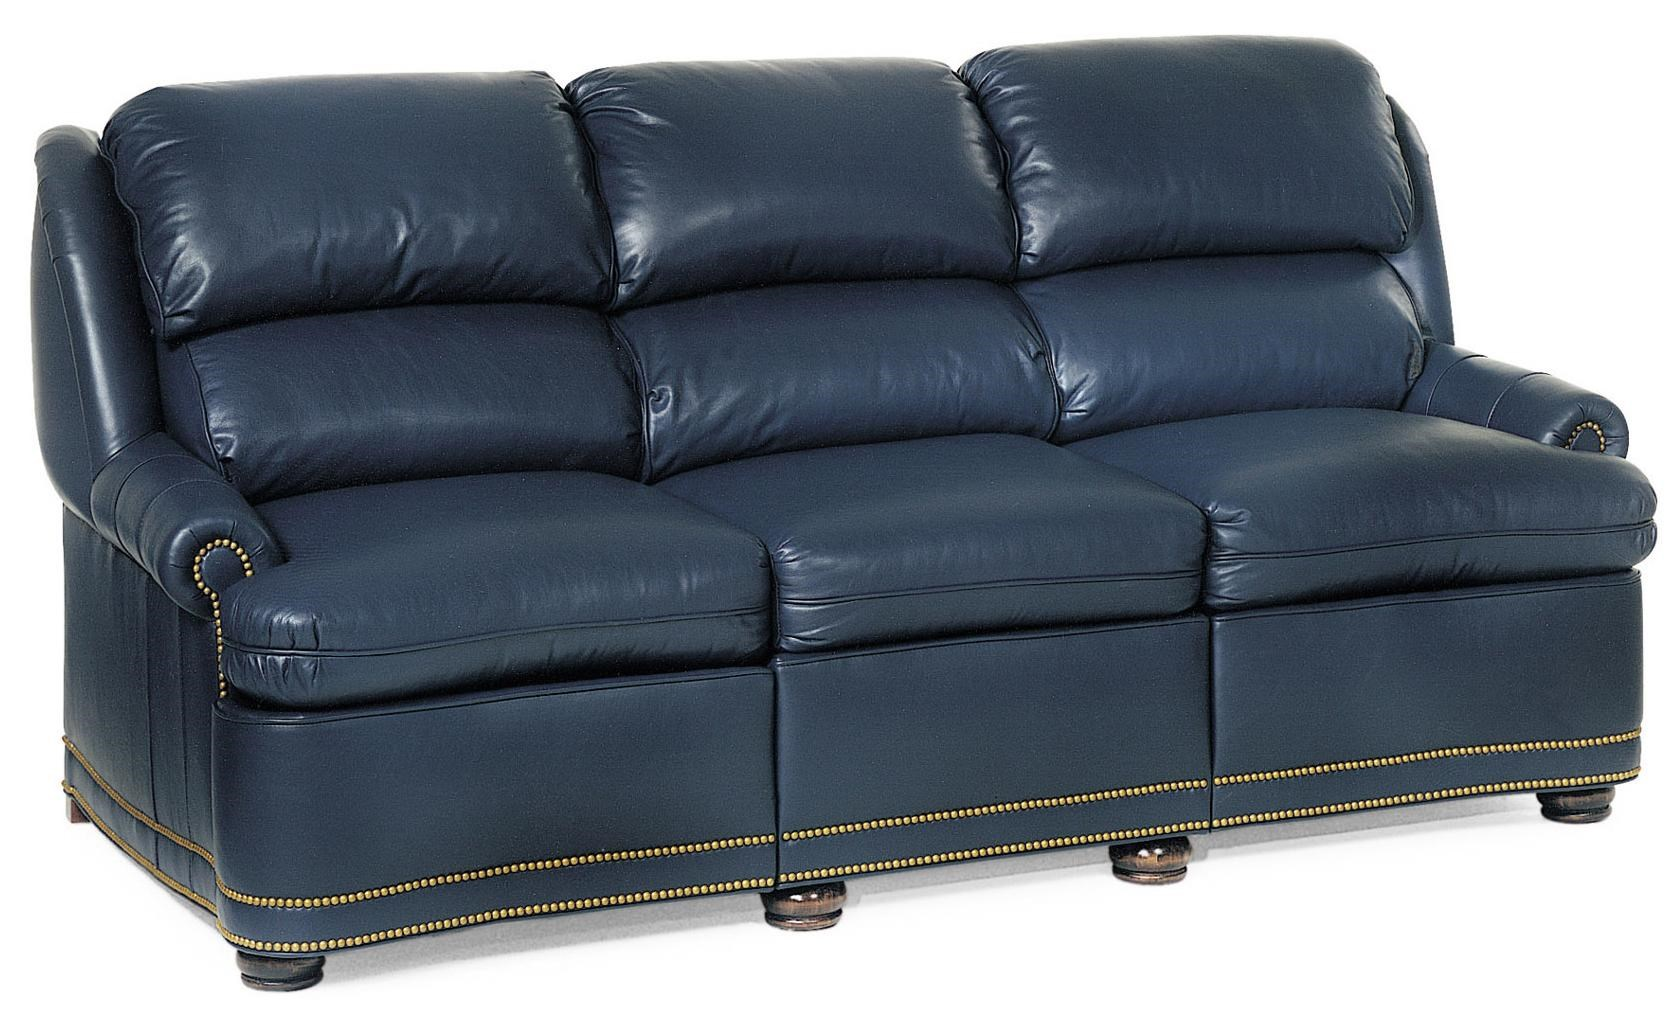 reclining sofa with nailhead trim benchcraft calicho 2 pc sectional laf corner chaise hancock moore austin 9034 30 traditional full recline